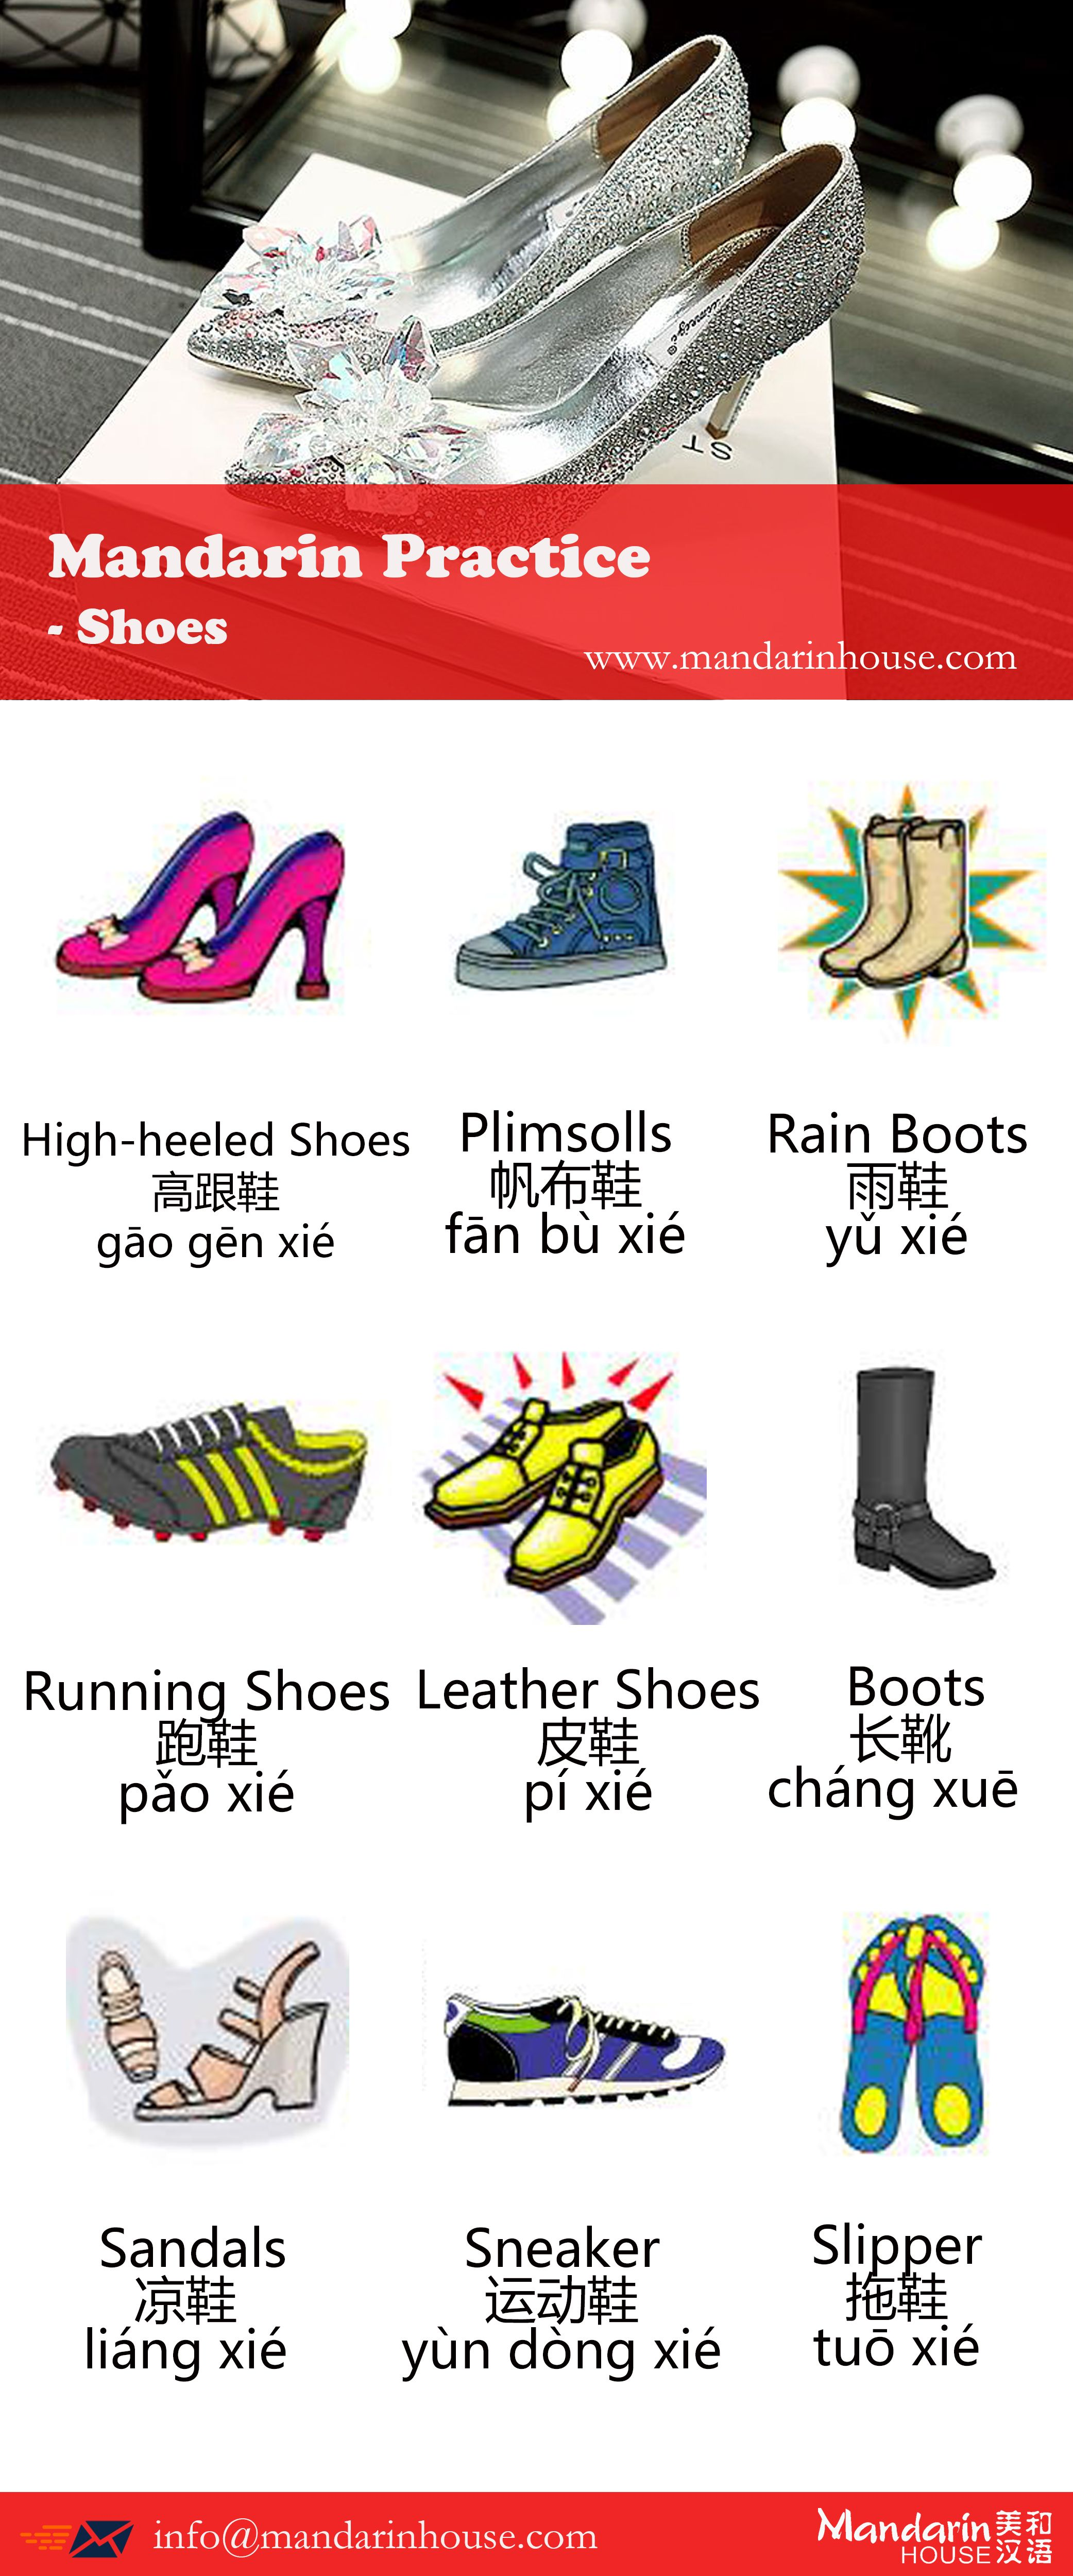 Shoes In Chinese R More Info Please Contact Sophia Zhang